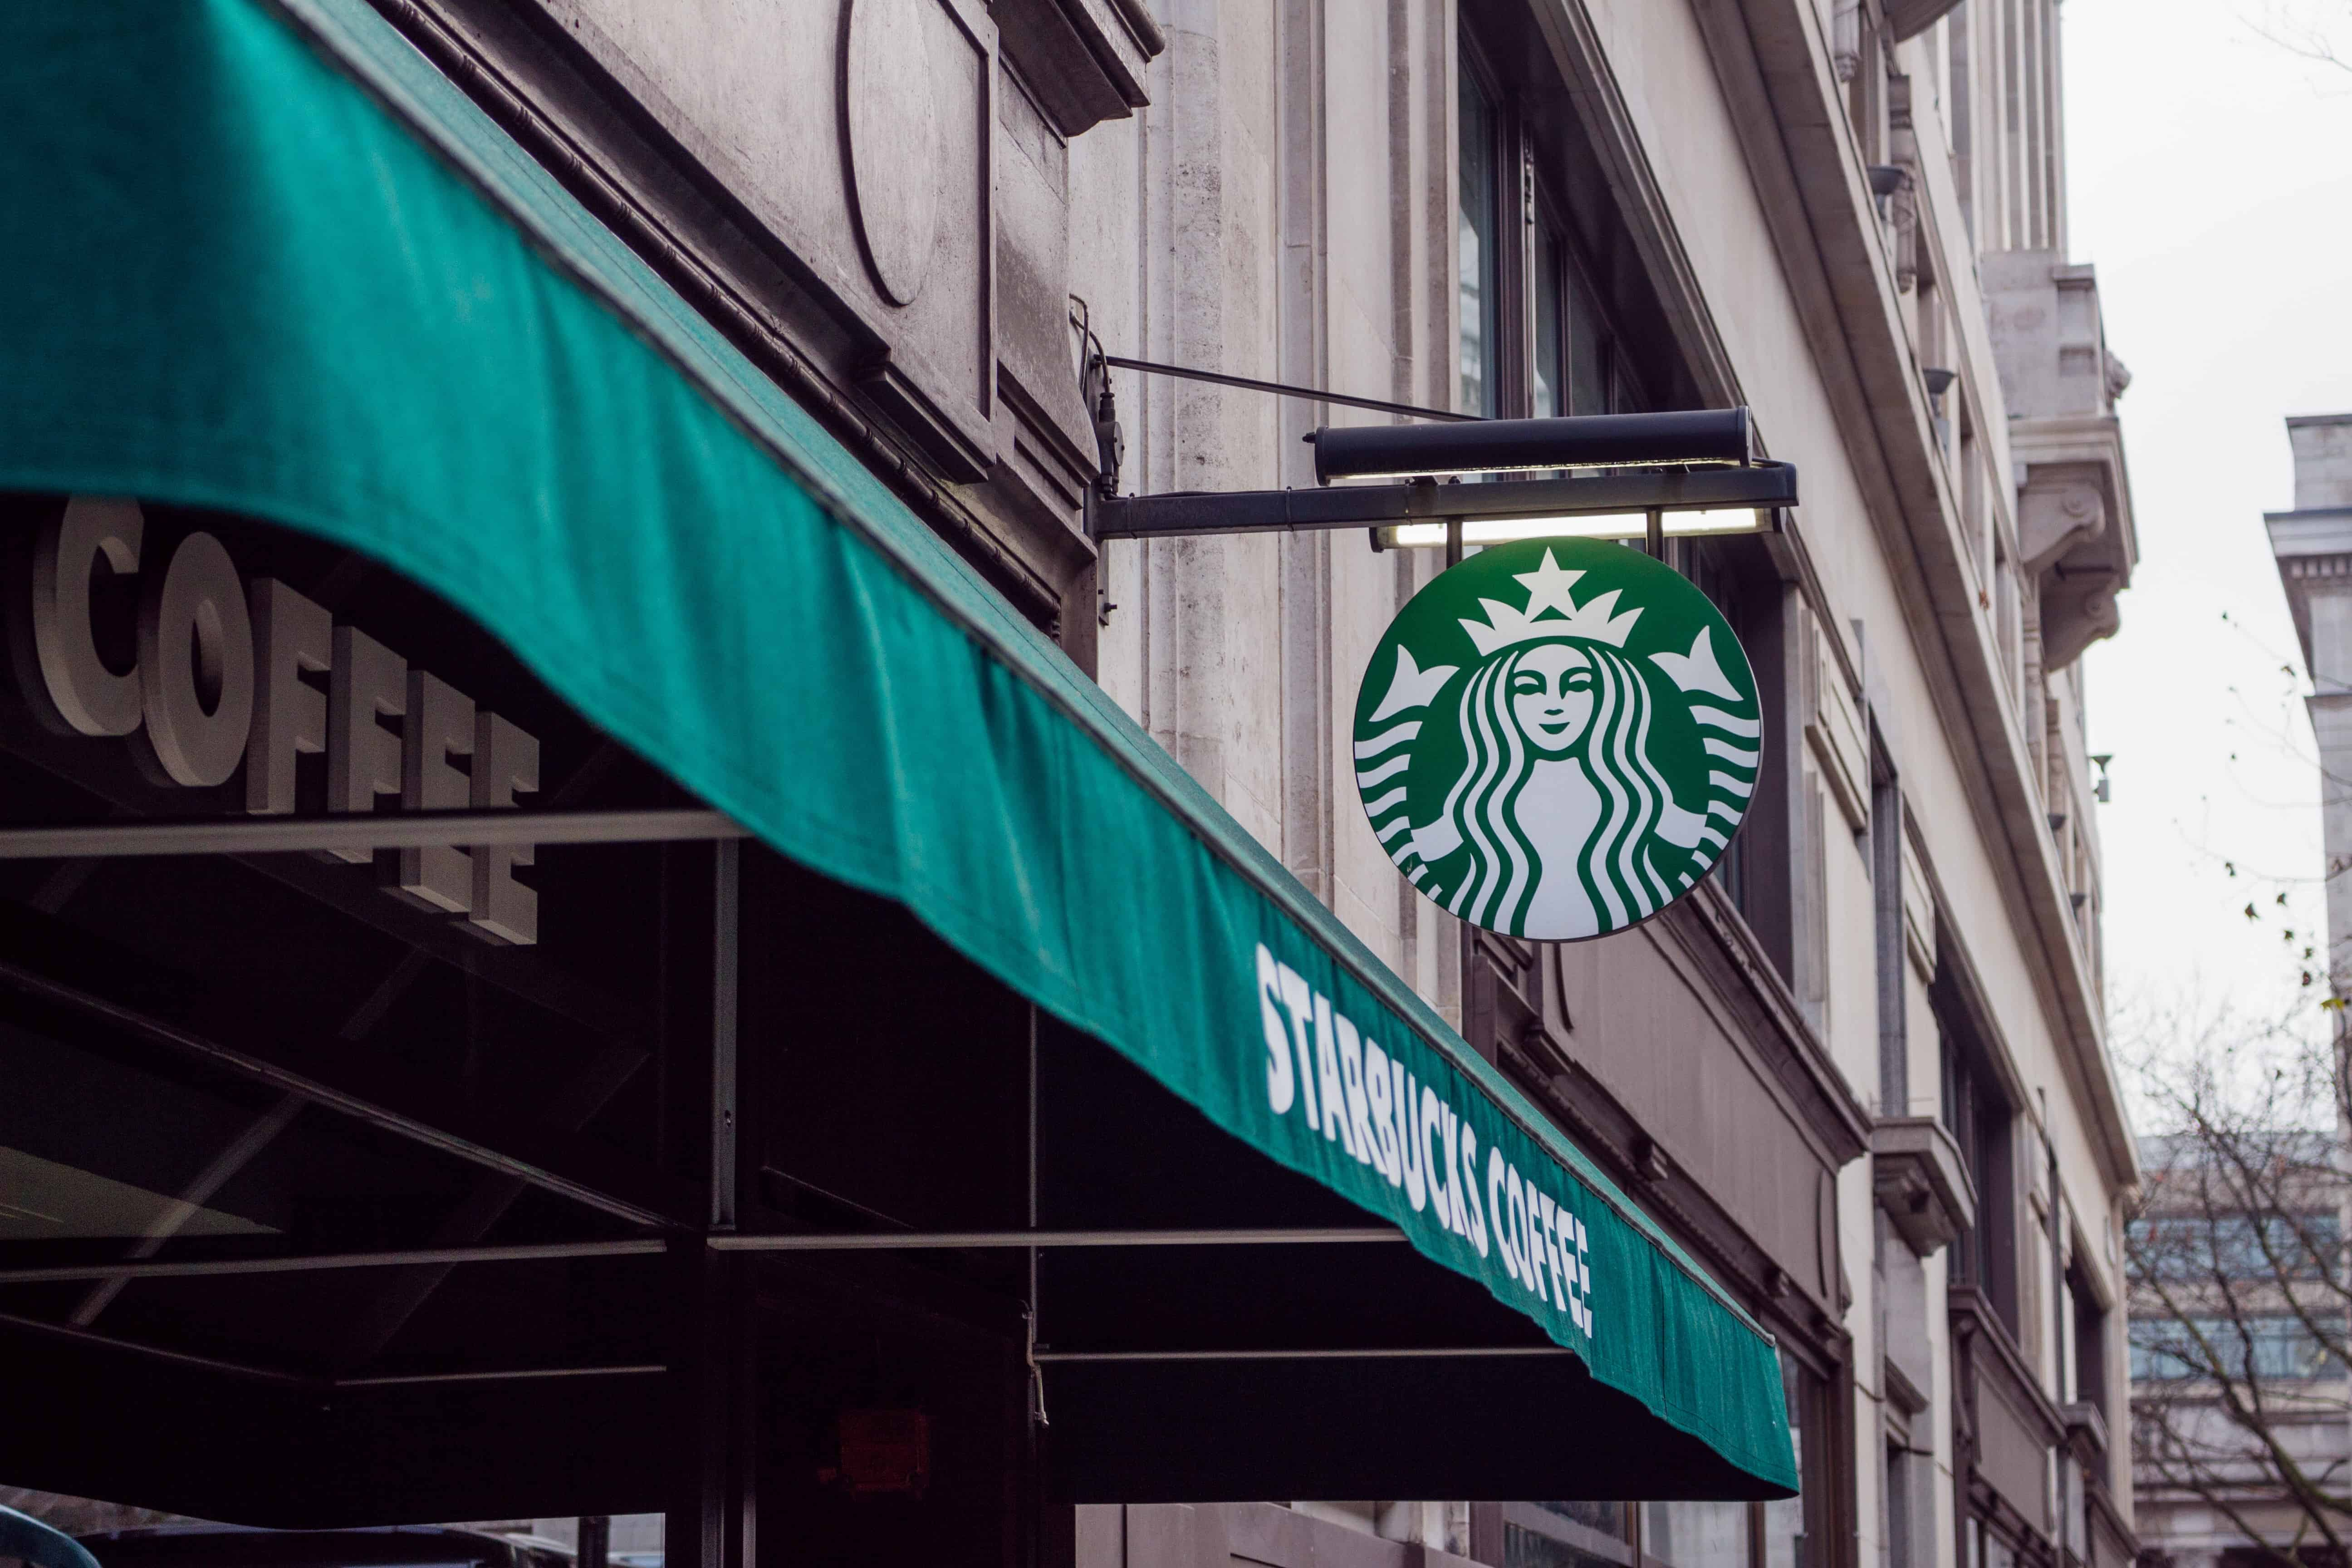 Starbucks shop front